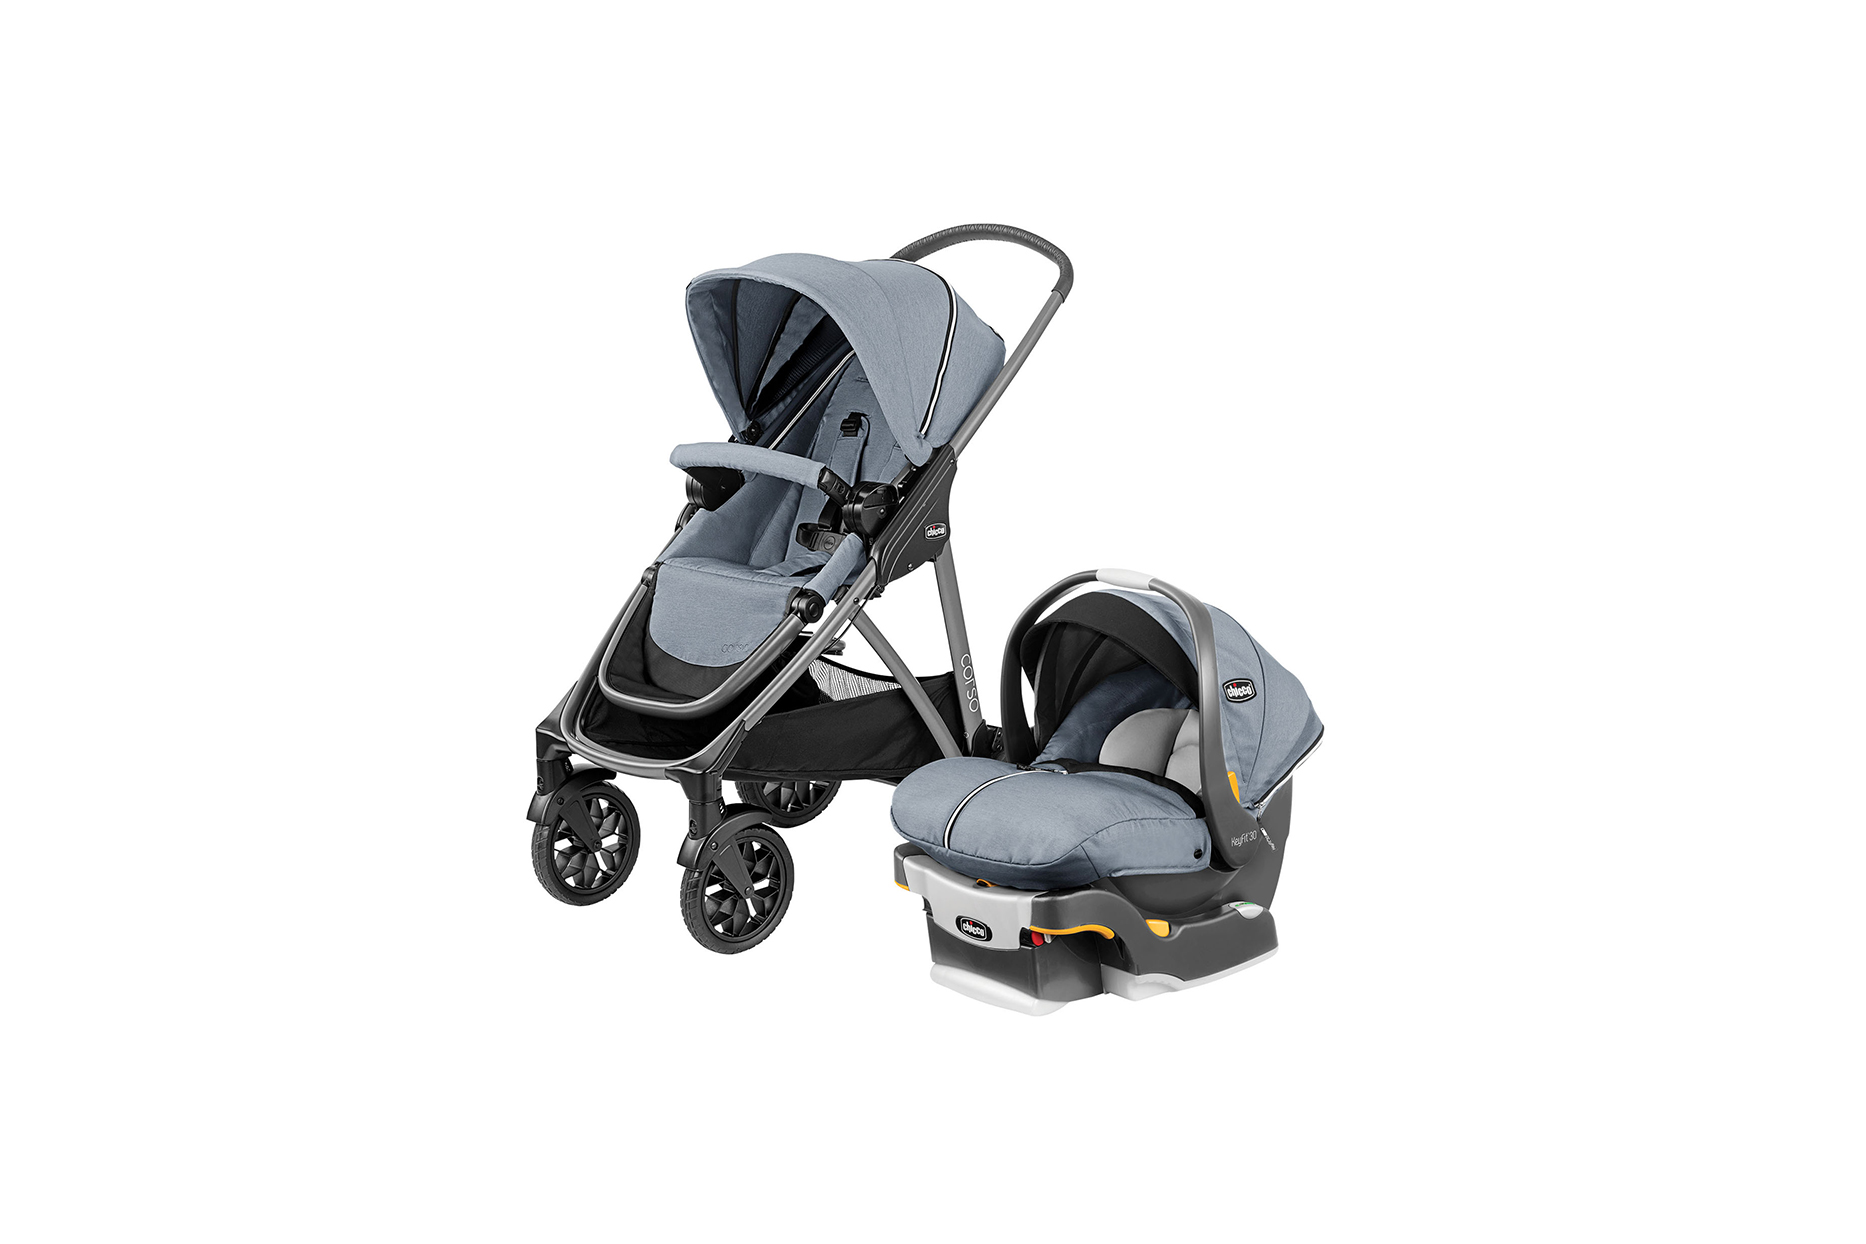 Best Stroller and Car-Seat Combo